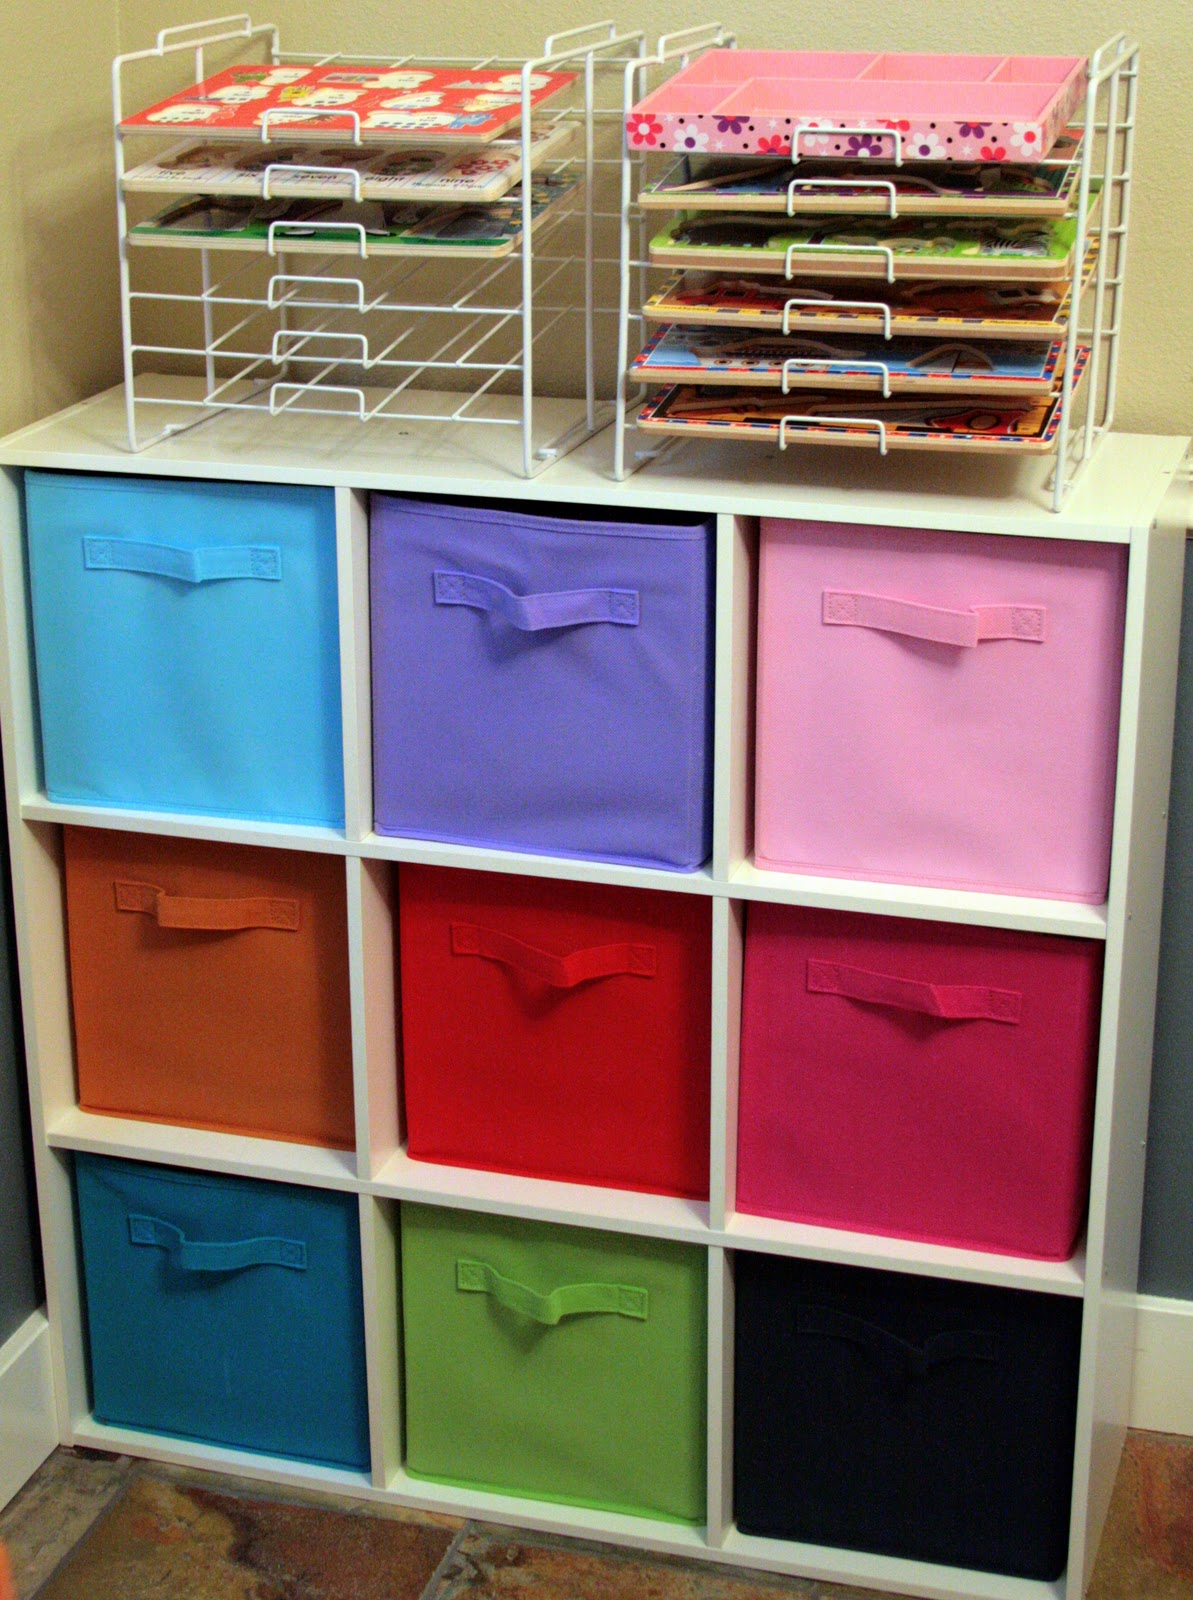 Storage Shelves With Bins Designs Home Decorations Innovative with regard to proportions 1193 X 1600